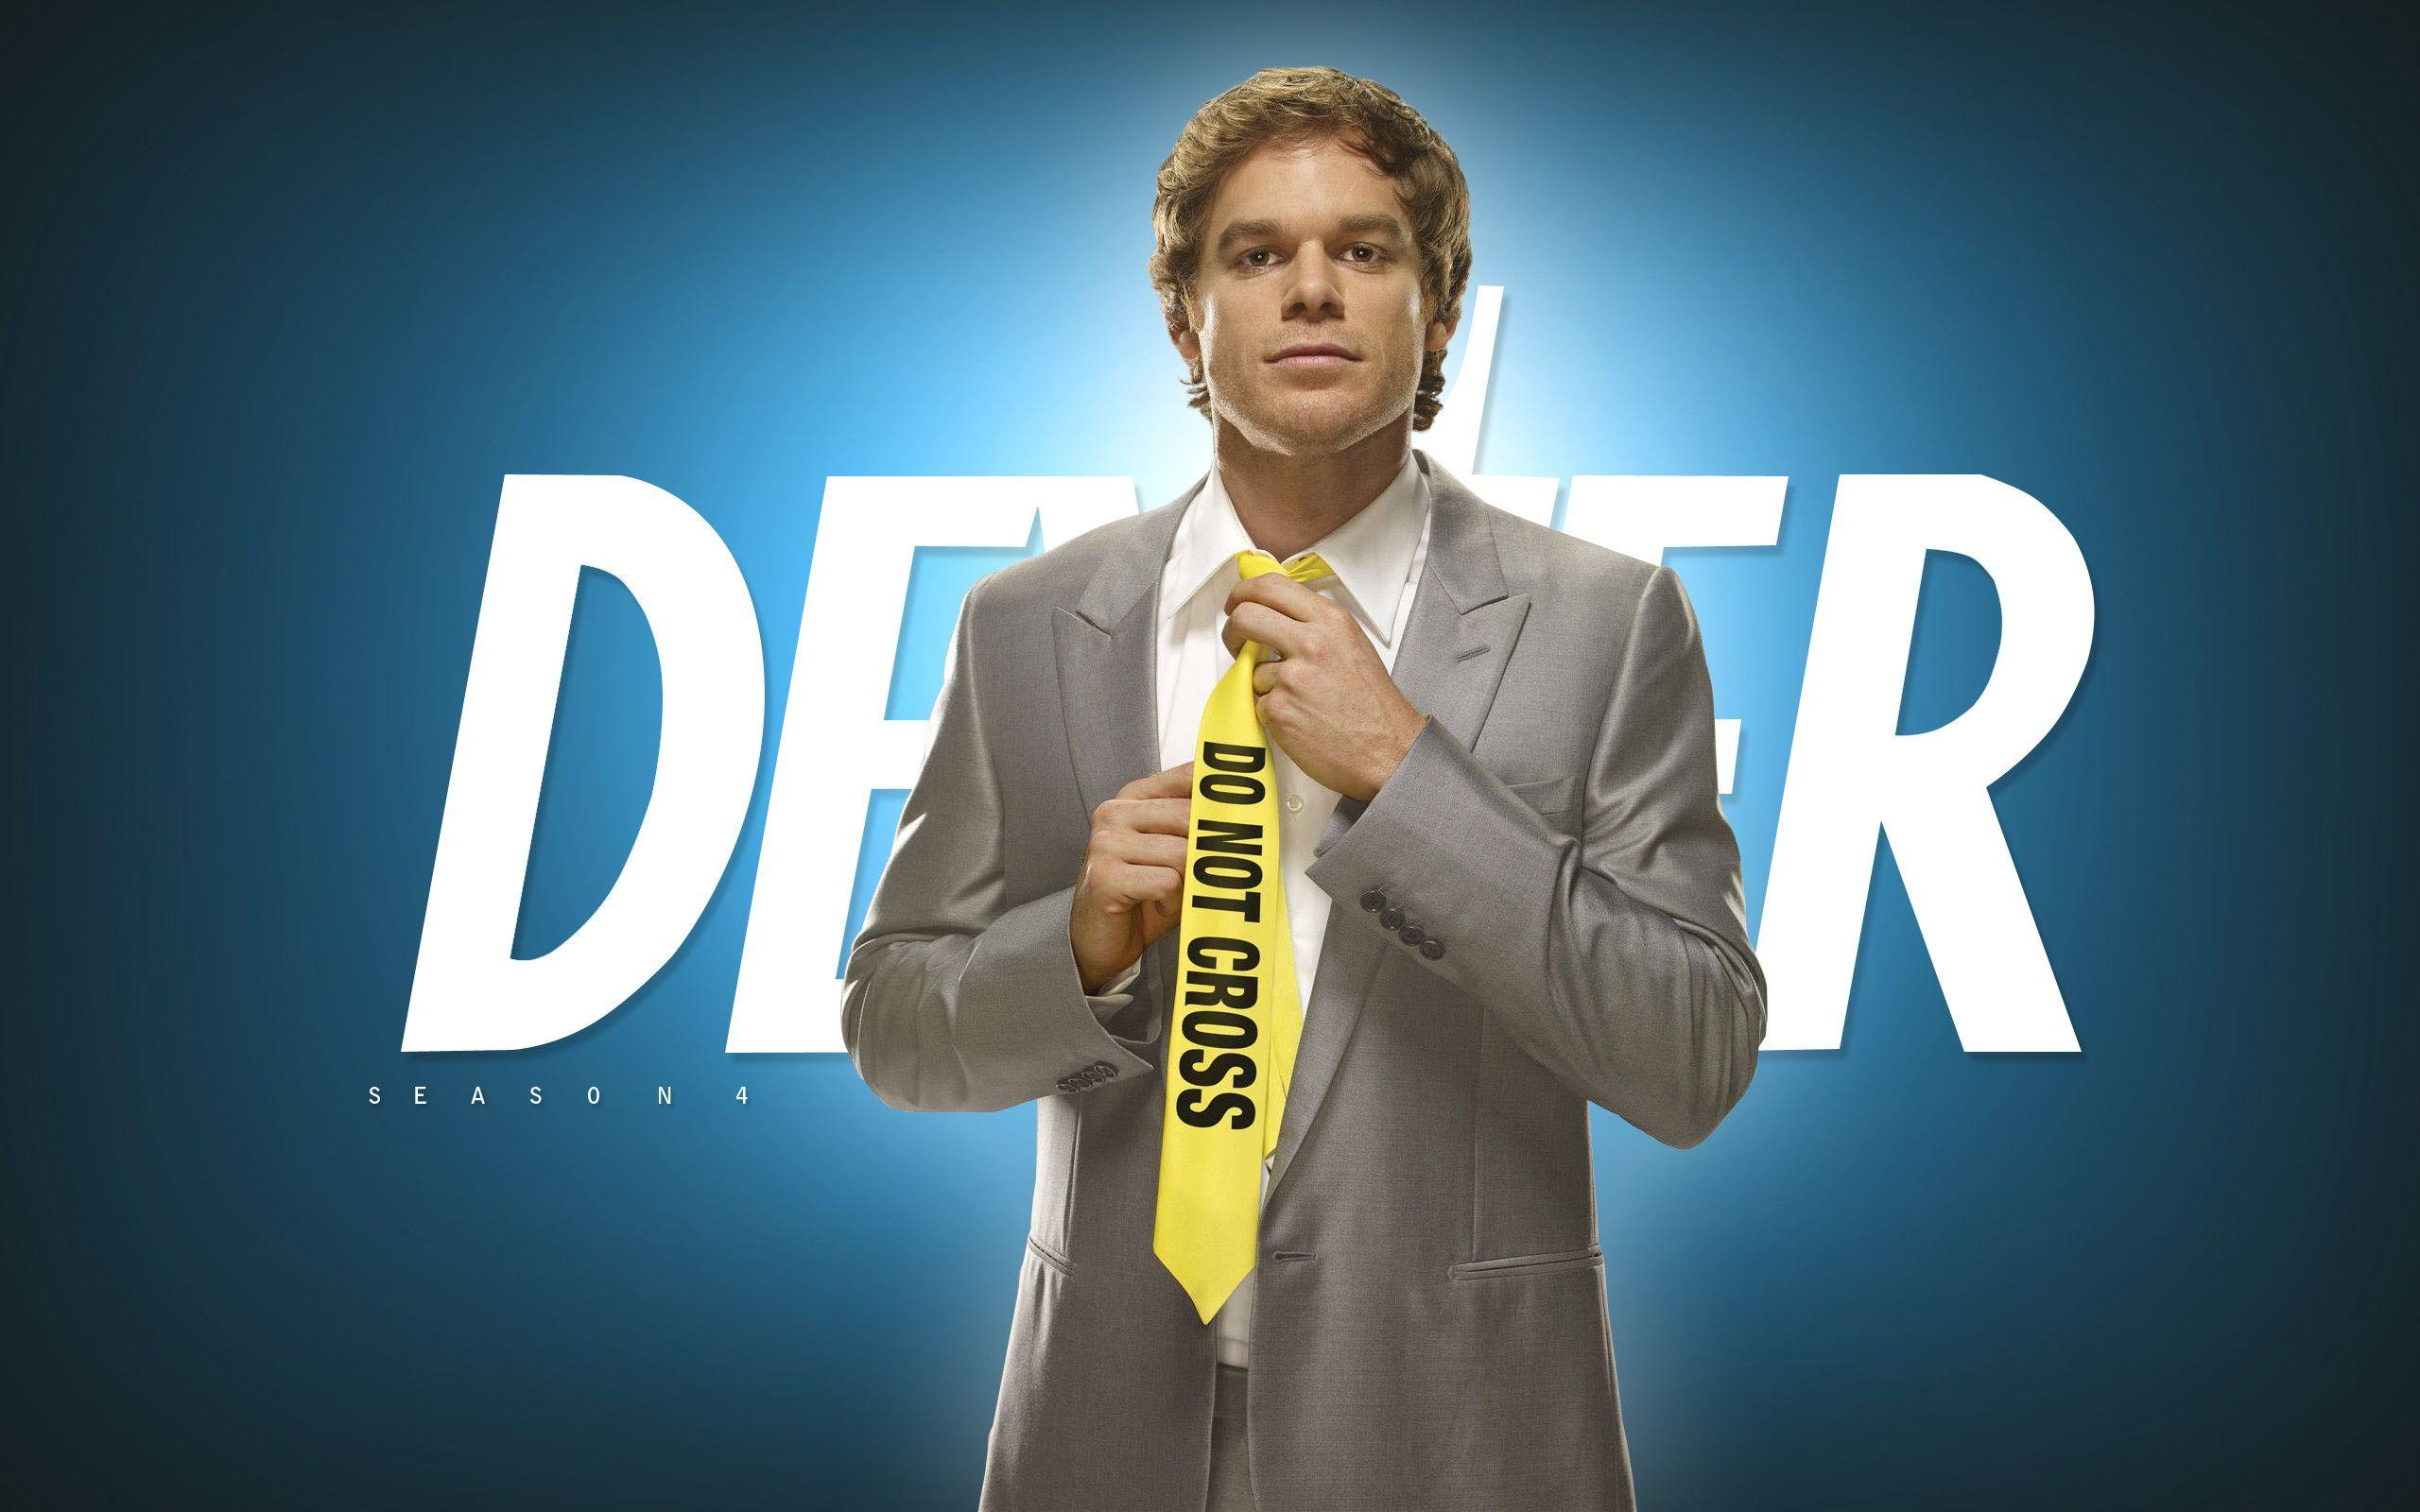 Dexter season 4 - Dexter Wallpaper (25241002) - Fanpop